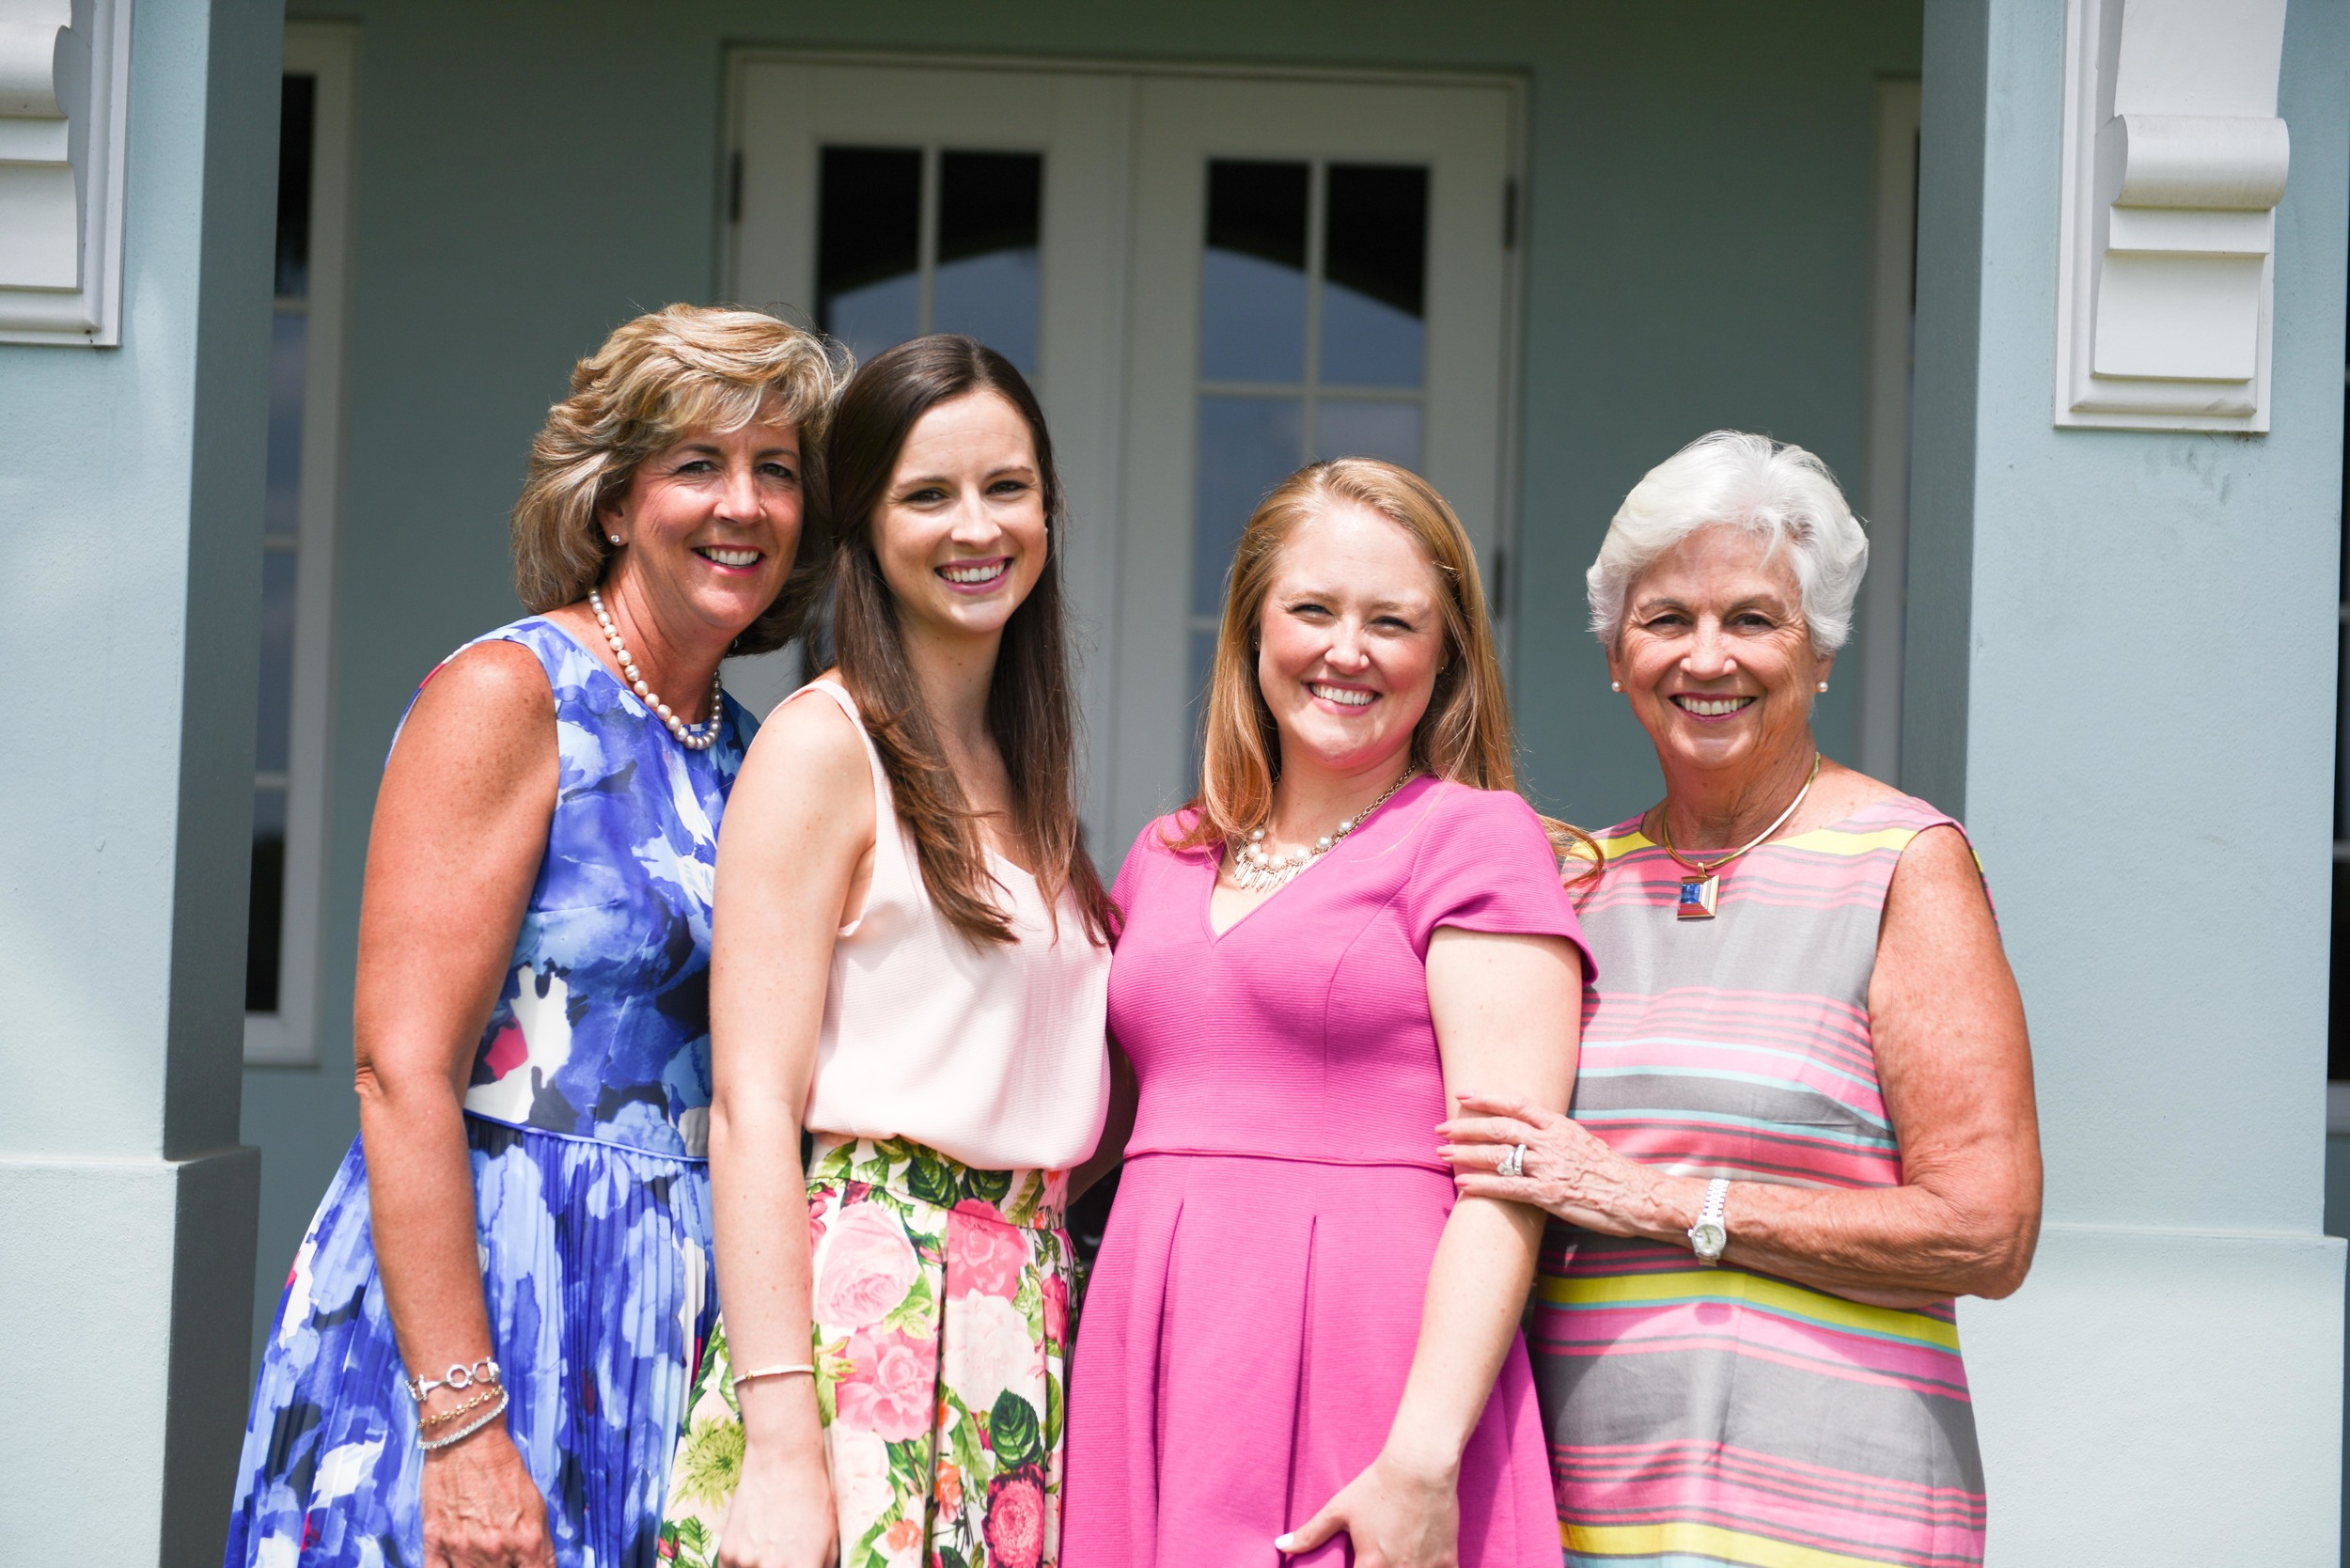 Bridal_Shower_CCaseyPhotography_9.jpg